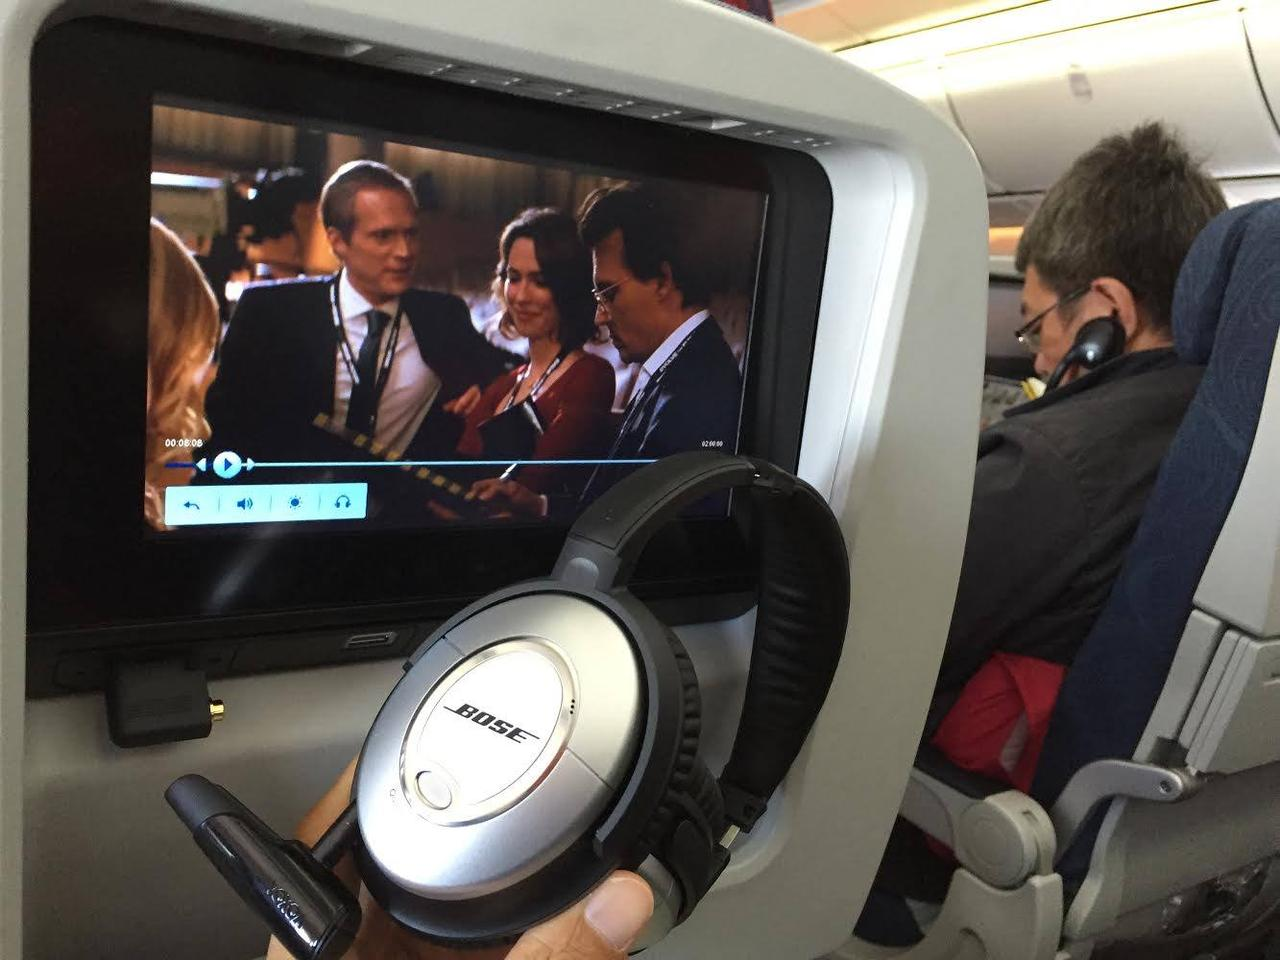 With the help of an optional Bluetooth transmitter, the BTunes system can be used for wireless audio on in-flight entertainment